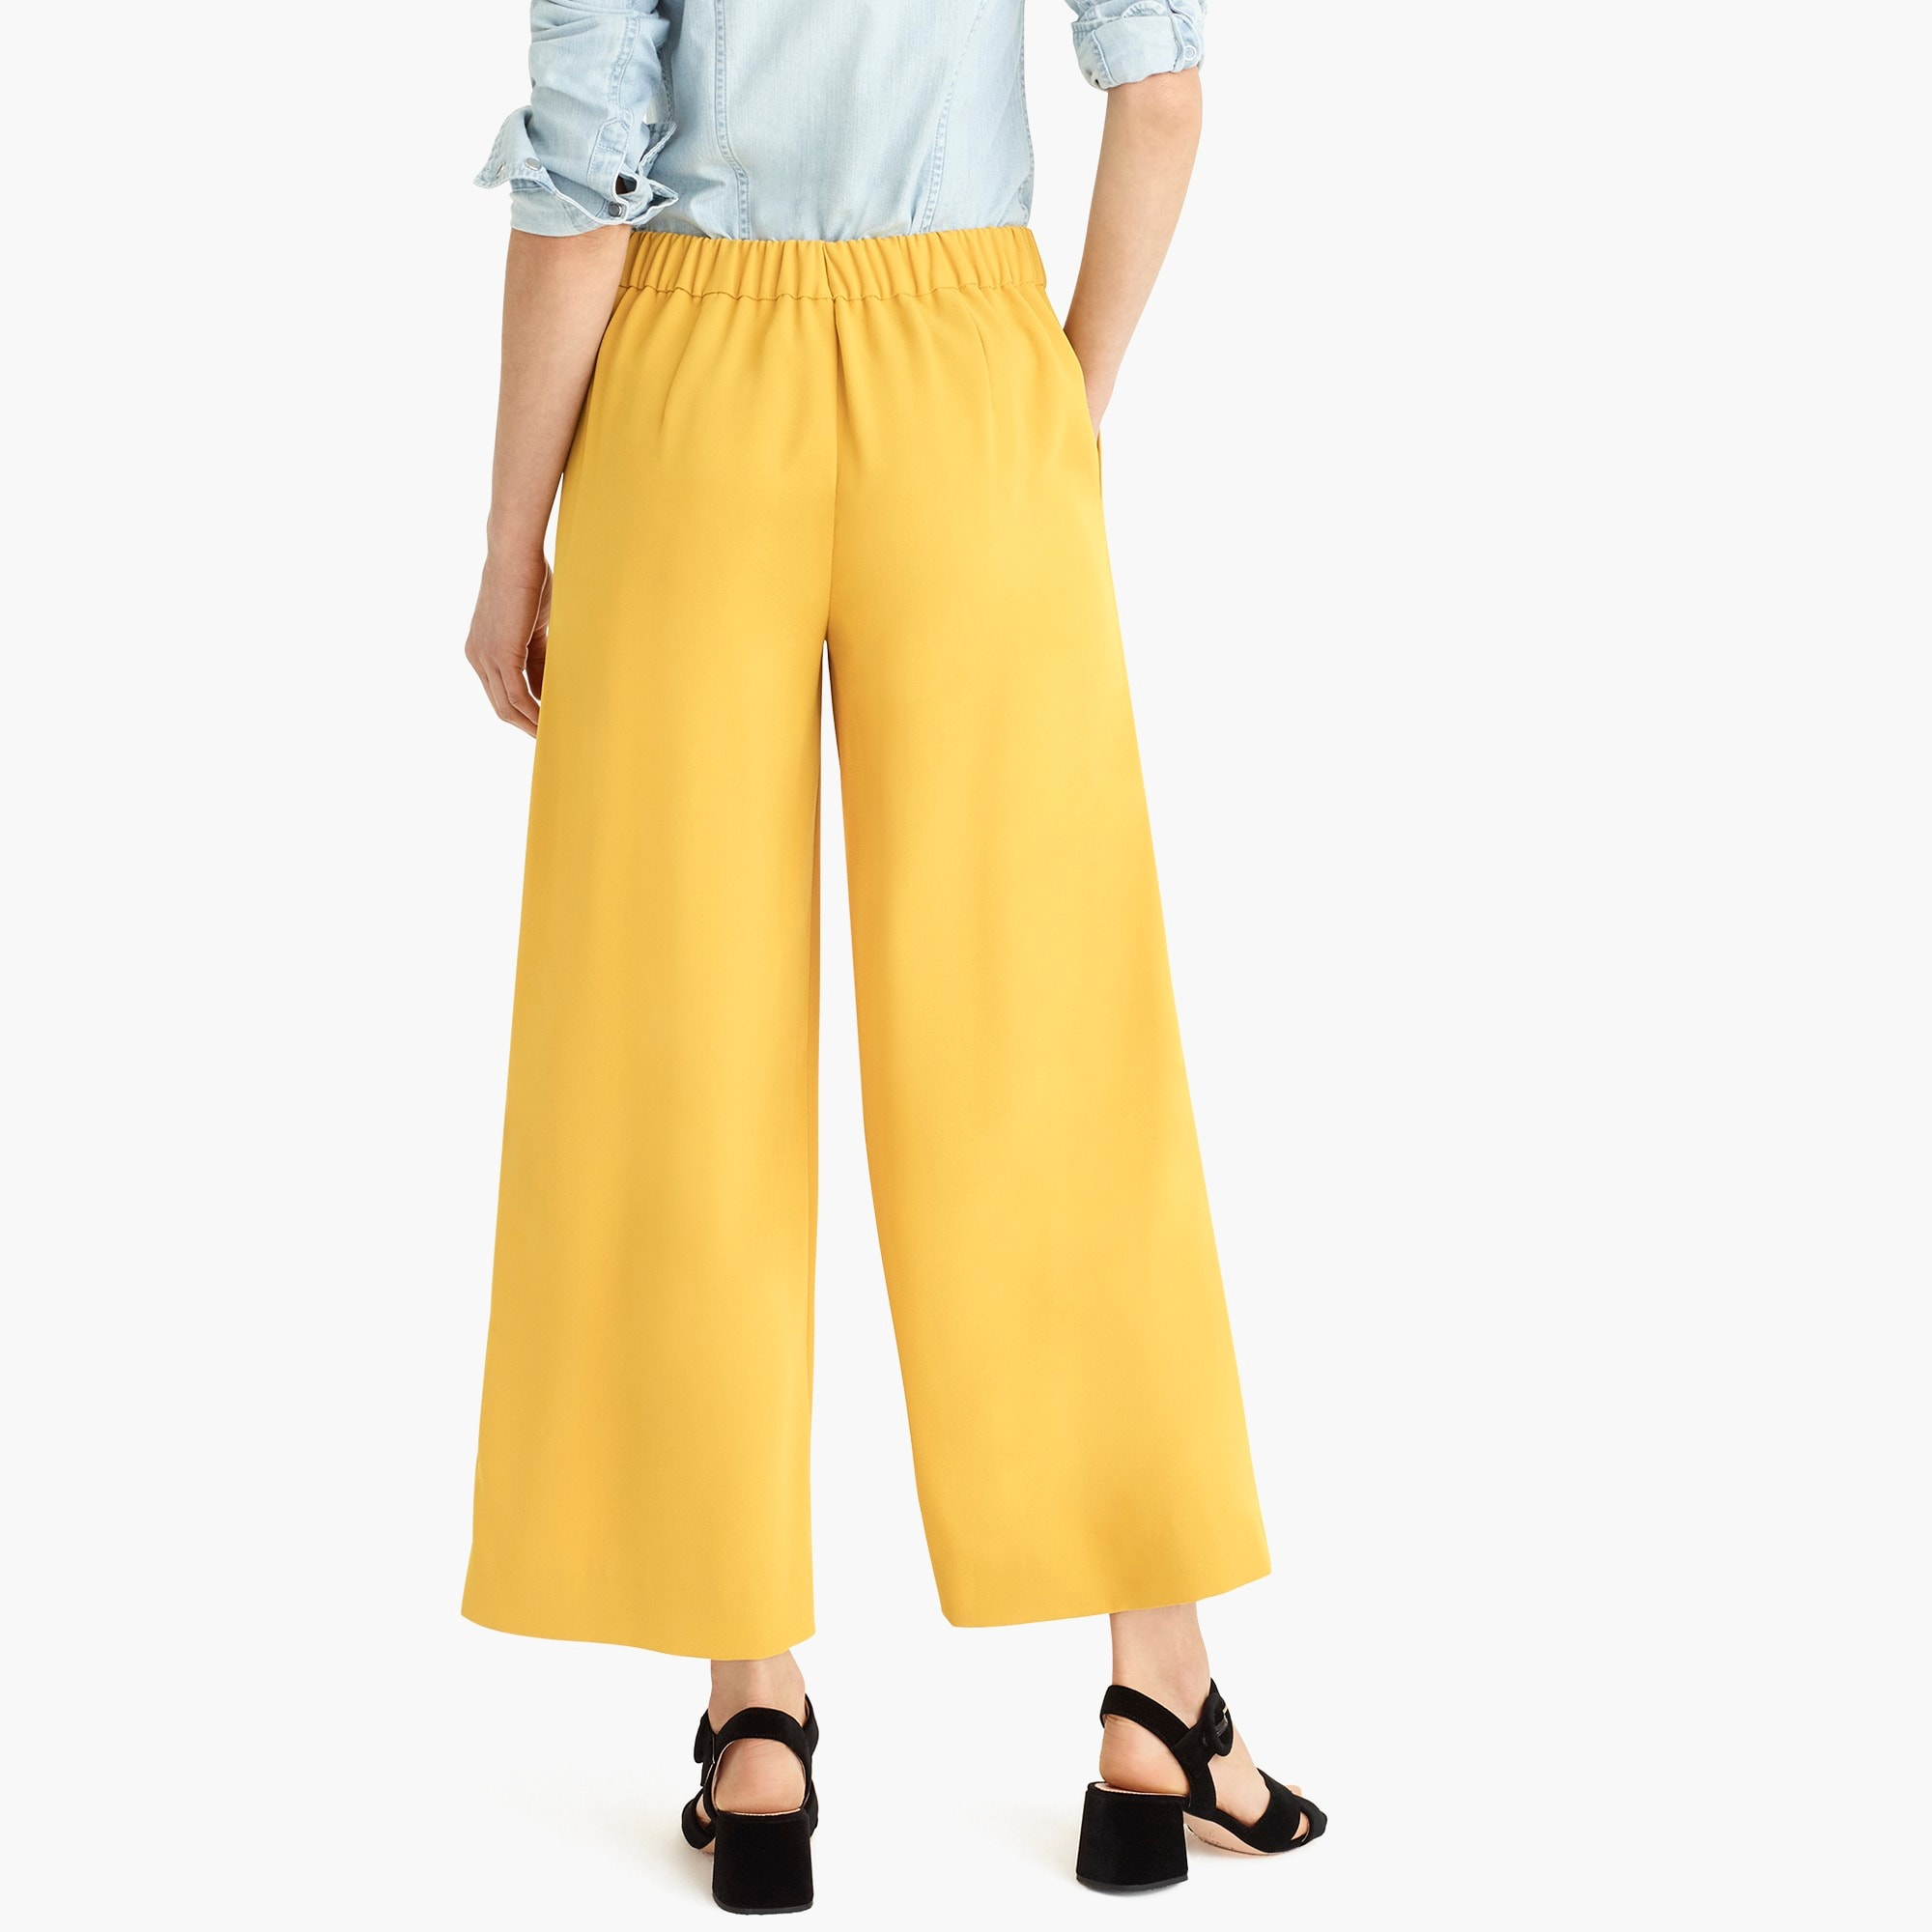 Image 6 for Petite wide-leg crop pant in 365 crepe